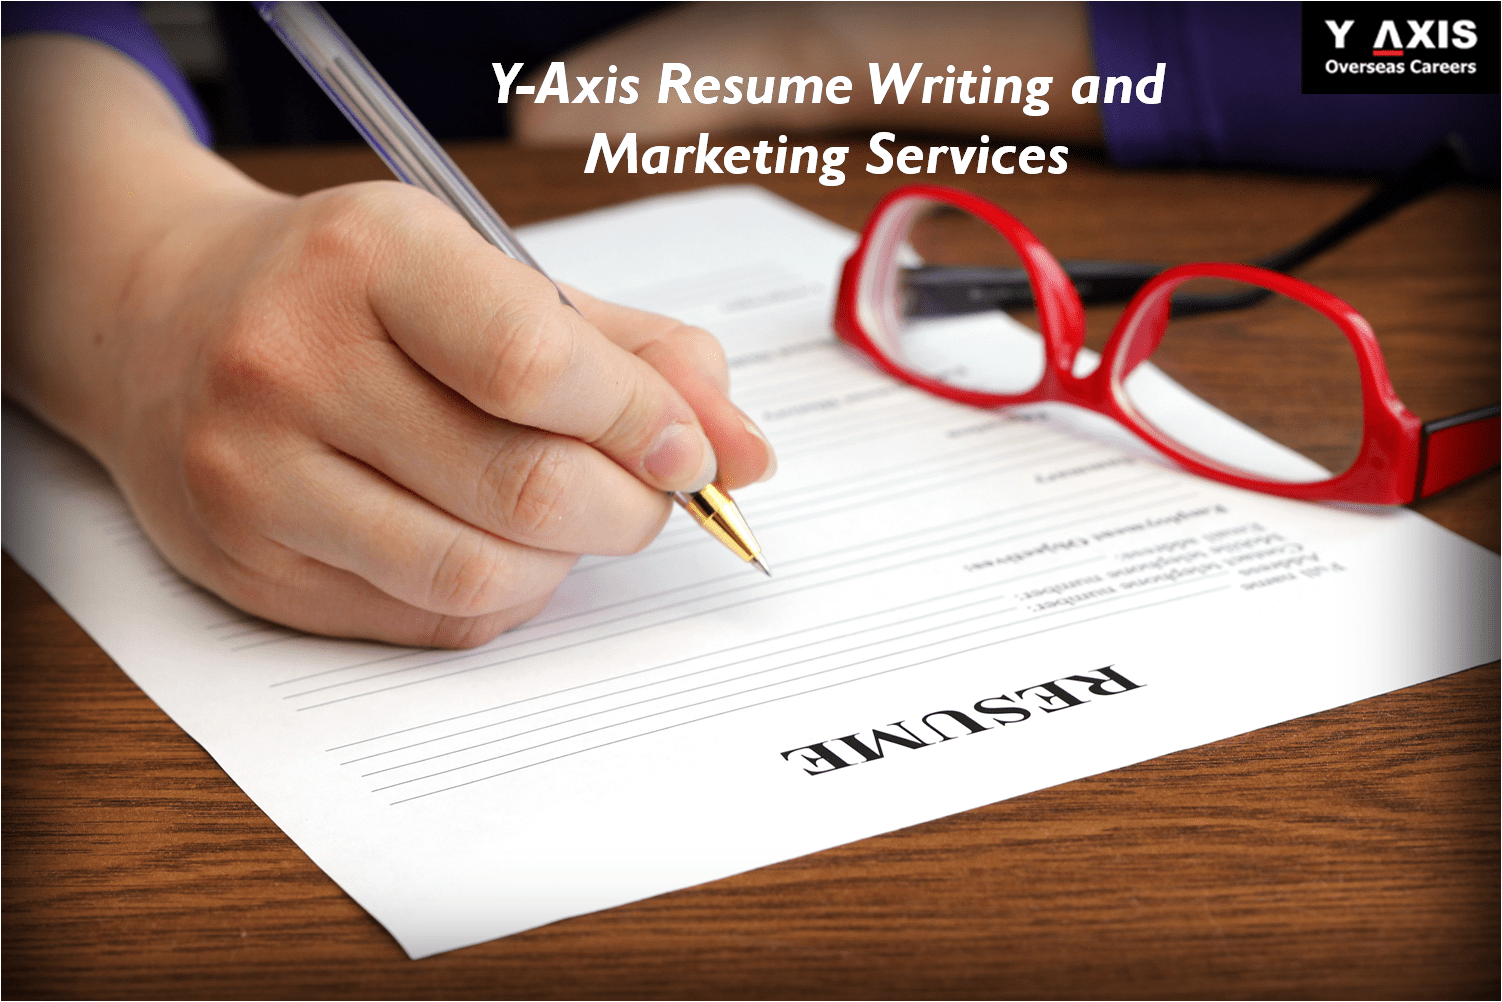 resume writing services recent testimonials healthcare jobs